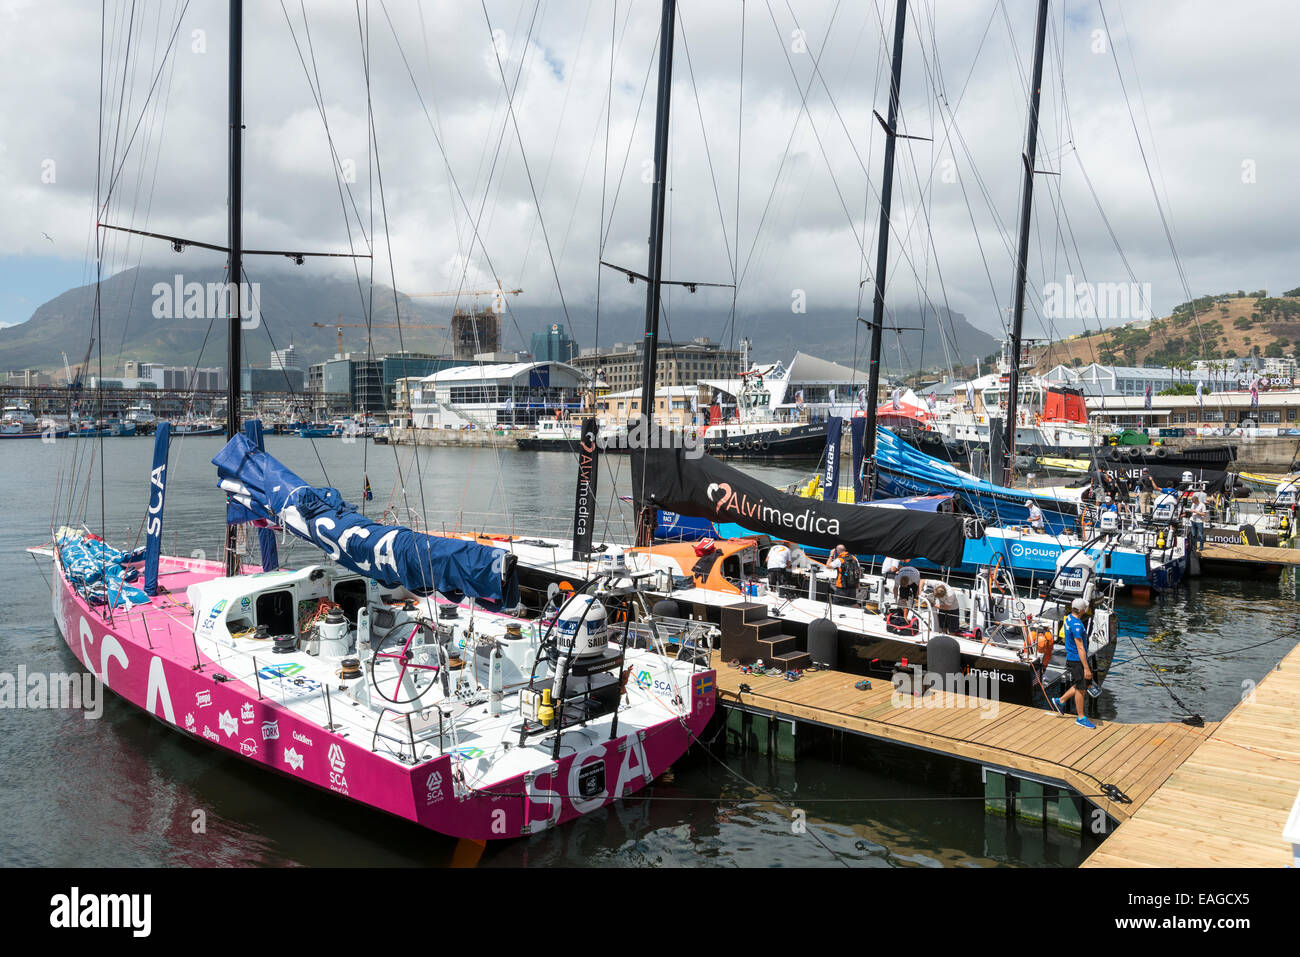 Crews preparing the boat for in harbour race, Volvo Ocean Race 2014-2015, Cape Town, South Africa - Stock Image